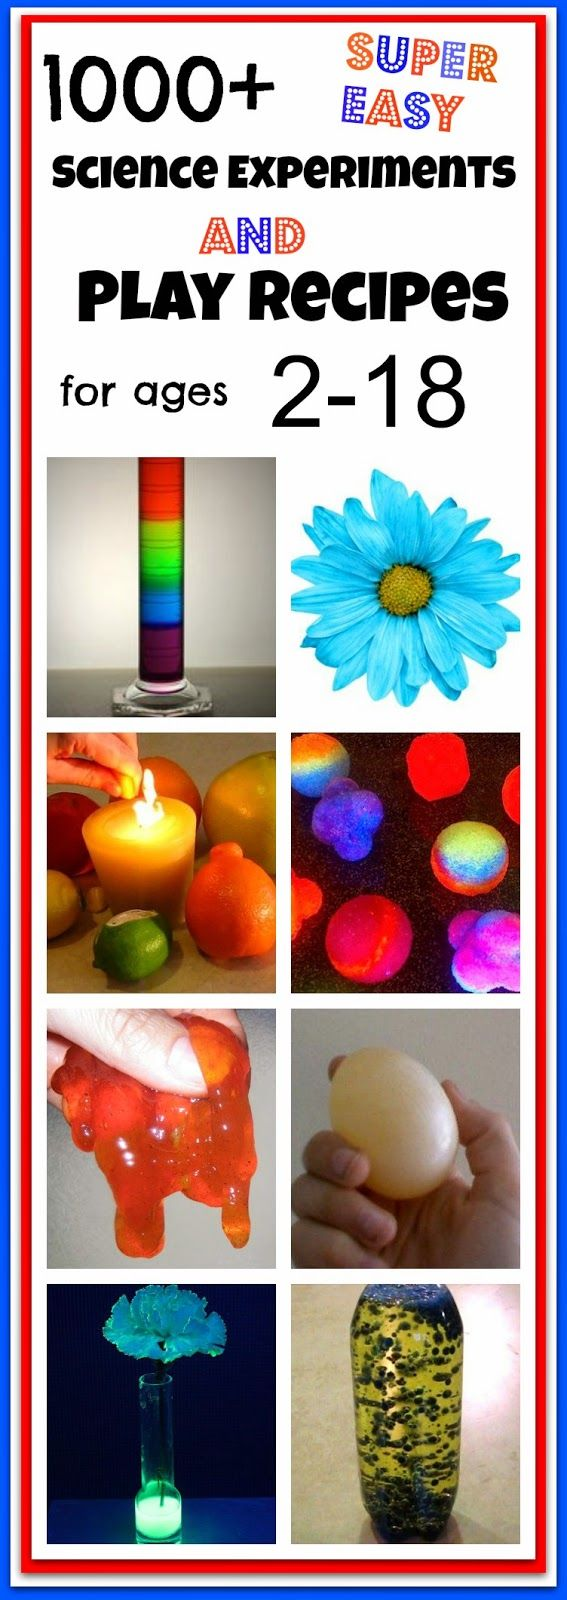 1000+ Science Experiments and Play Recipes for children ages 2-18 years! The Ultimate Science Experiment and Play Recipe Pin!!